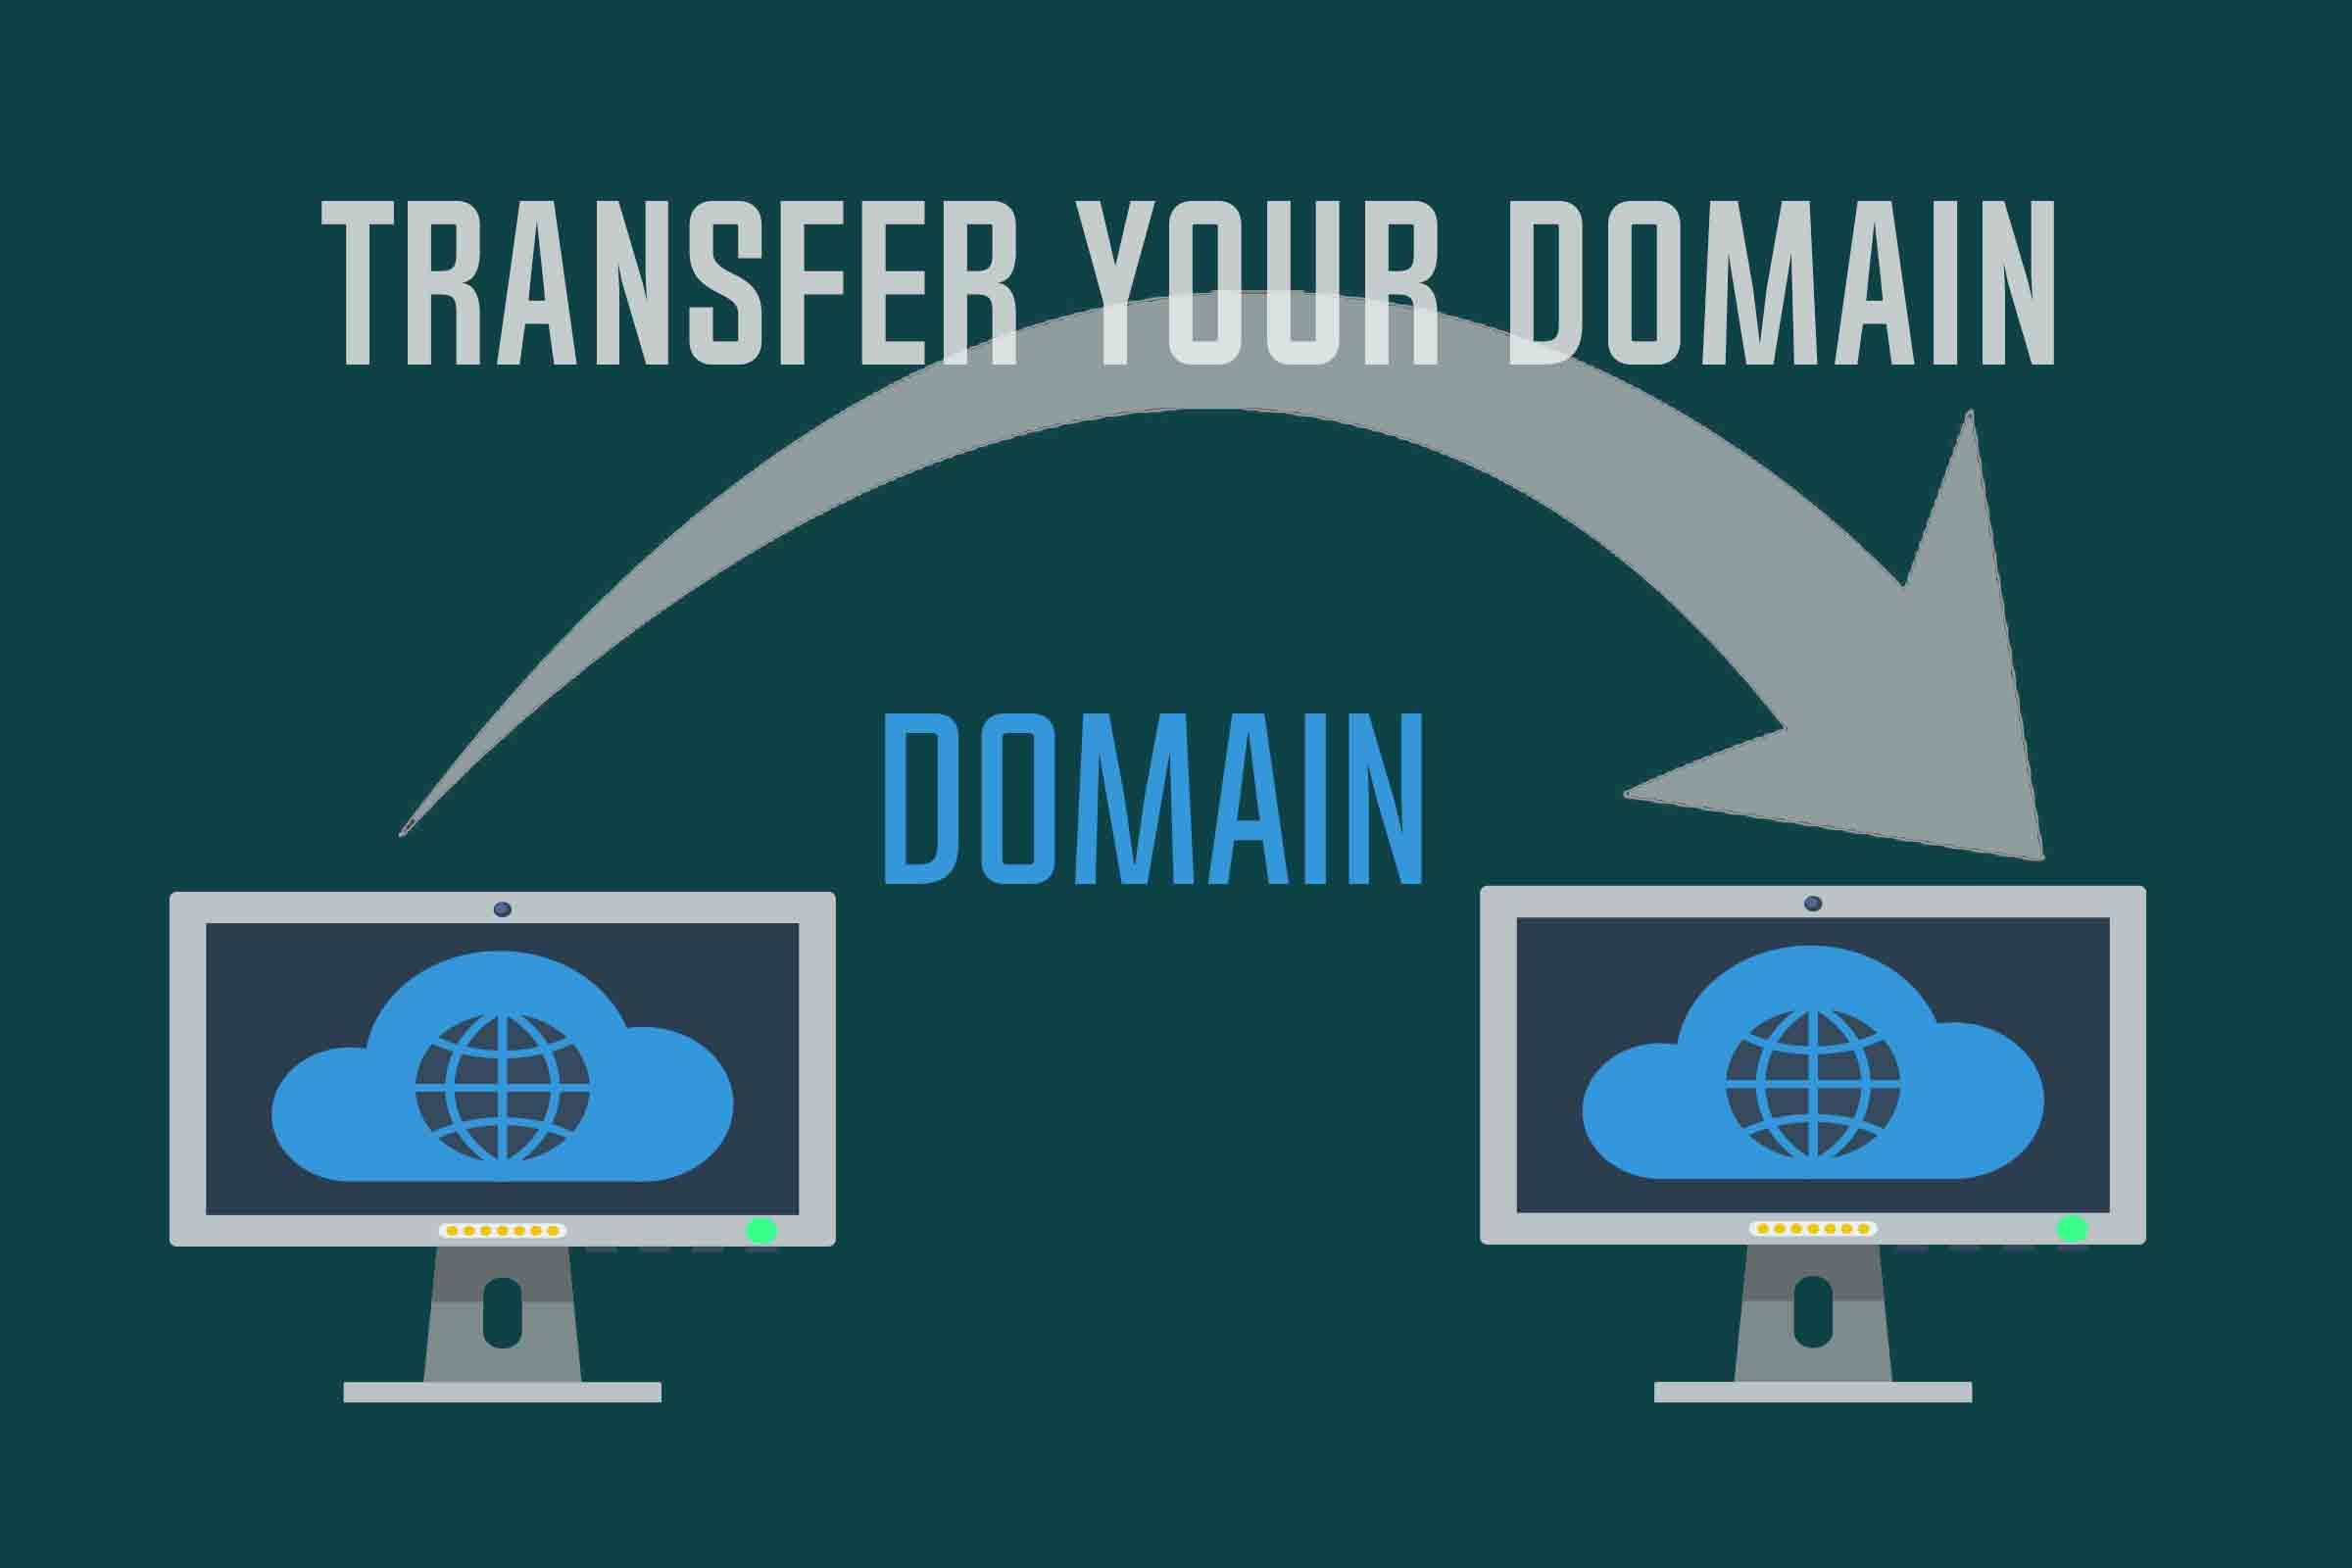 If you are planning to transfer your domain name to new